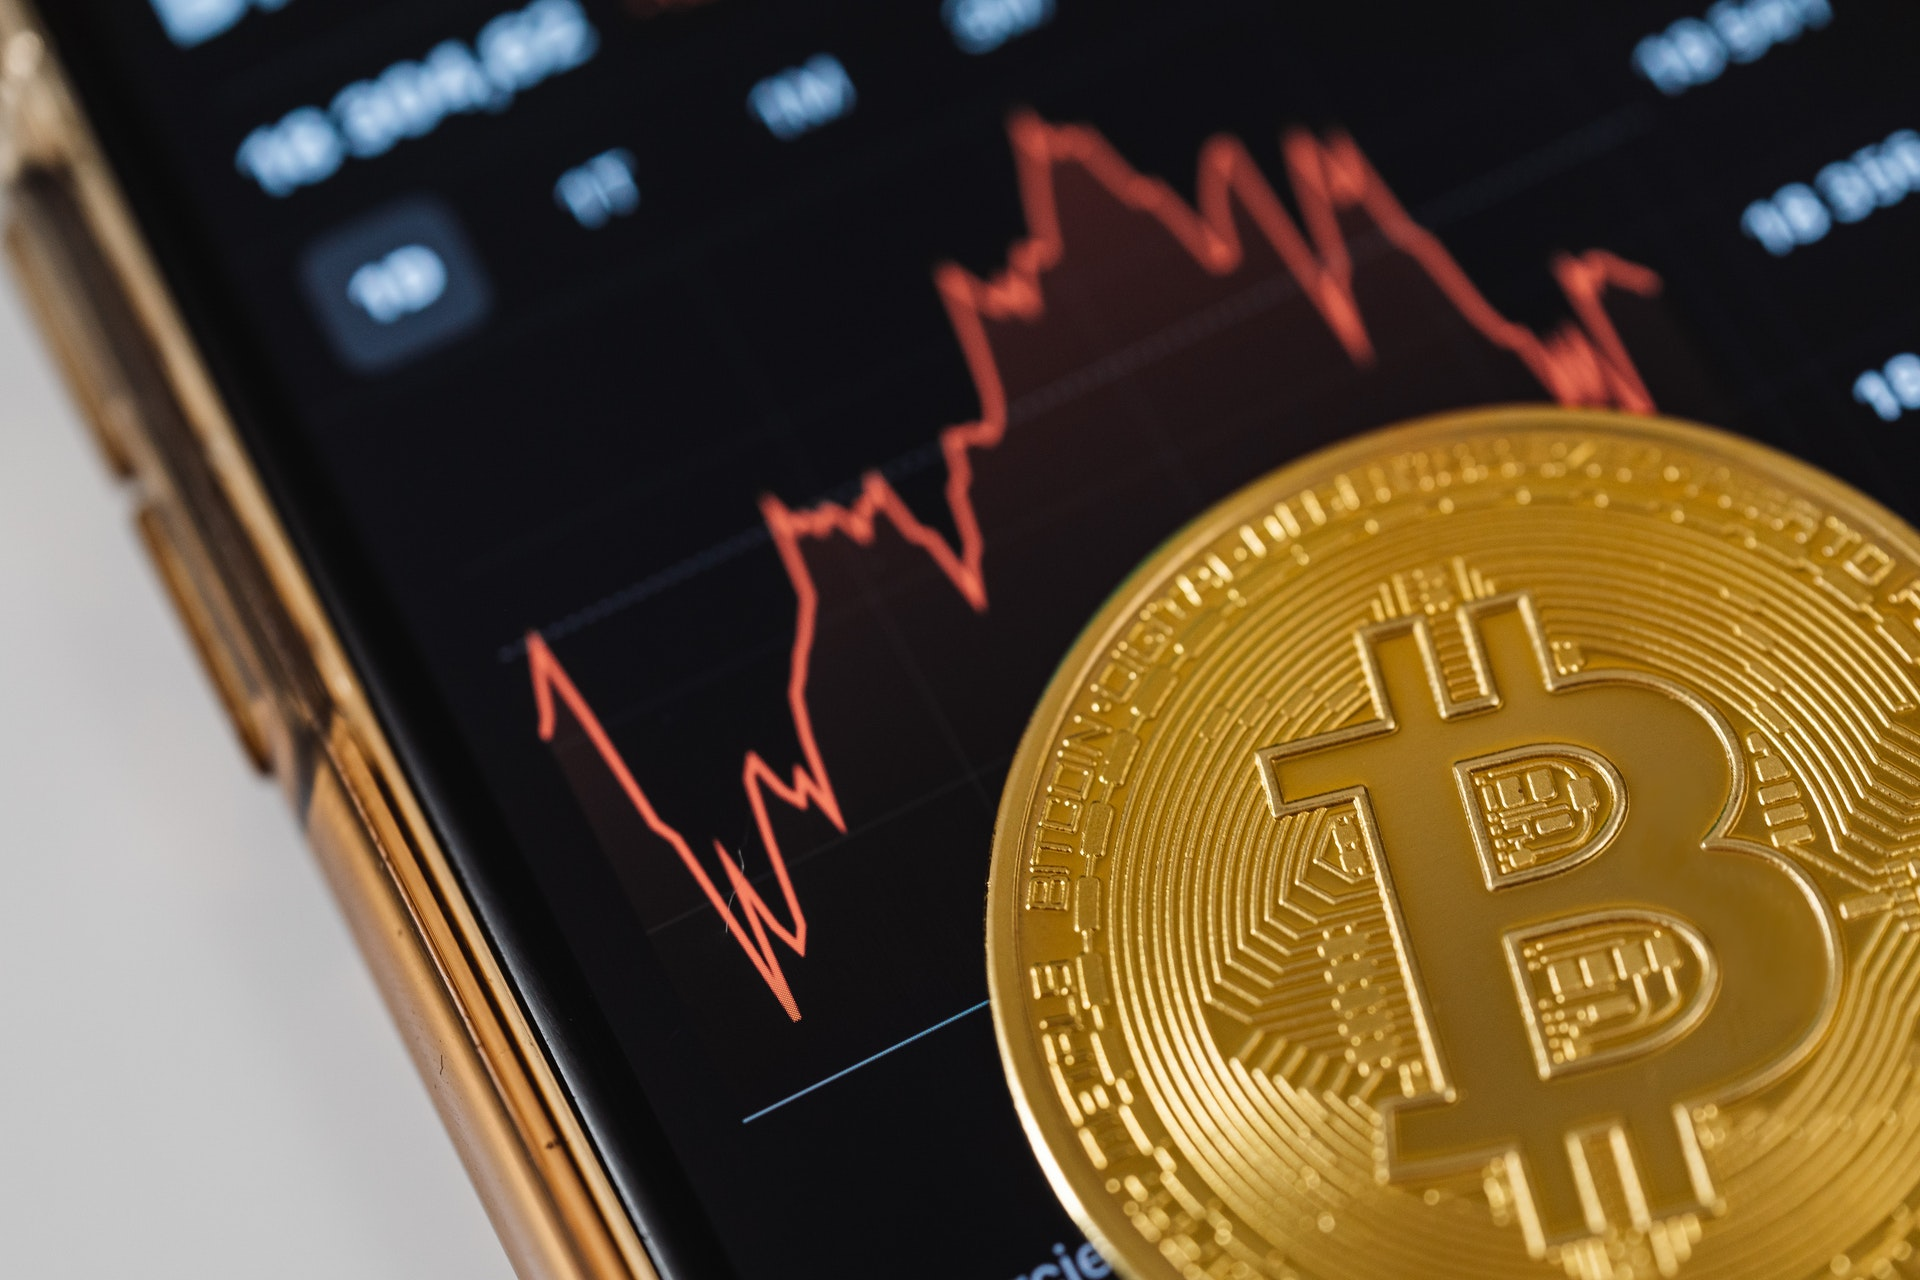 Chief Investment Officers Don't Really Like Bitcoin, Goldman Sachs Survey Reveals